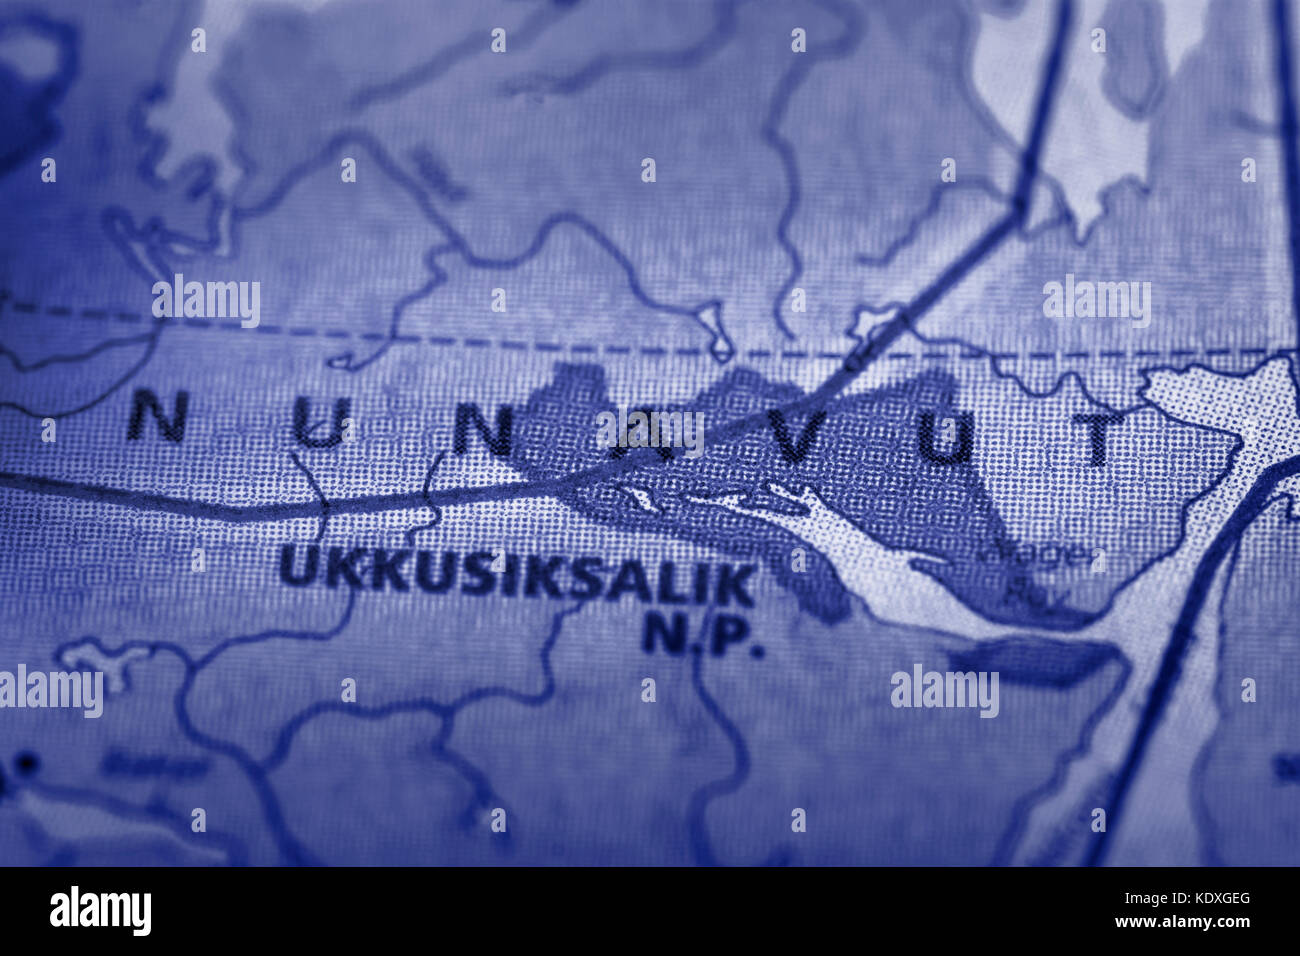 """Closeup of the """"Nunavut"""" territory with a icy blue tone on a political map of Canada. Stock Photo"""